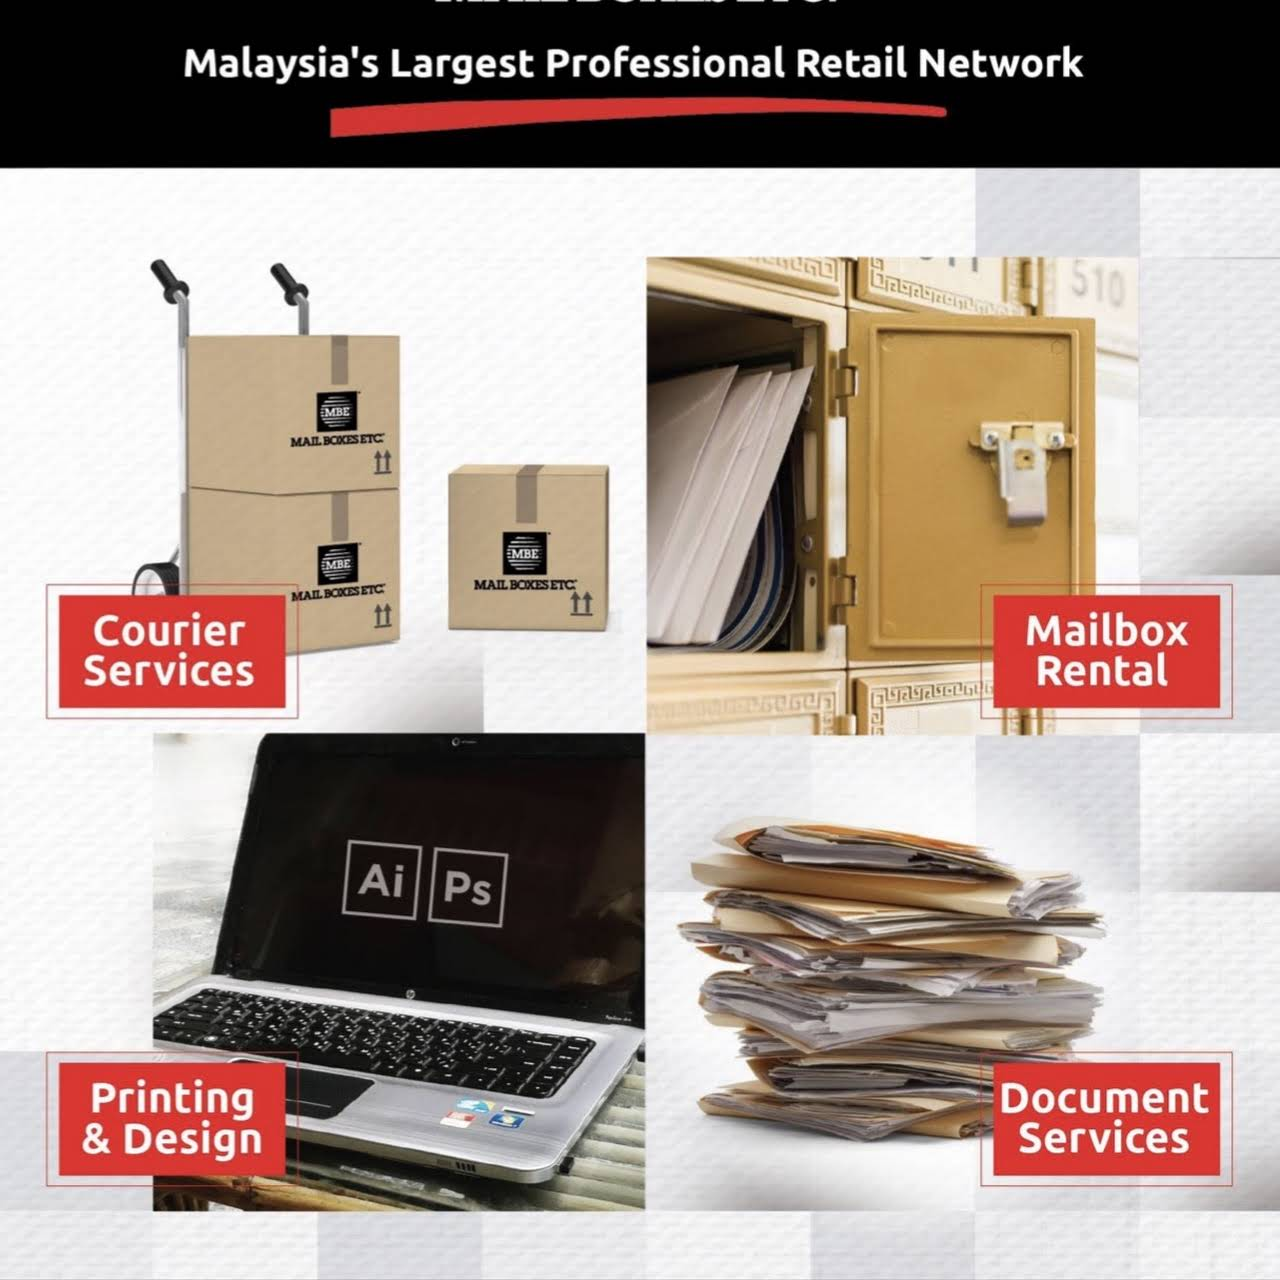 Mail Boxes Etc , Paradigm Mall - Courier Experts